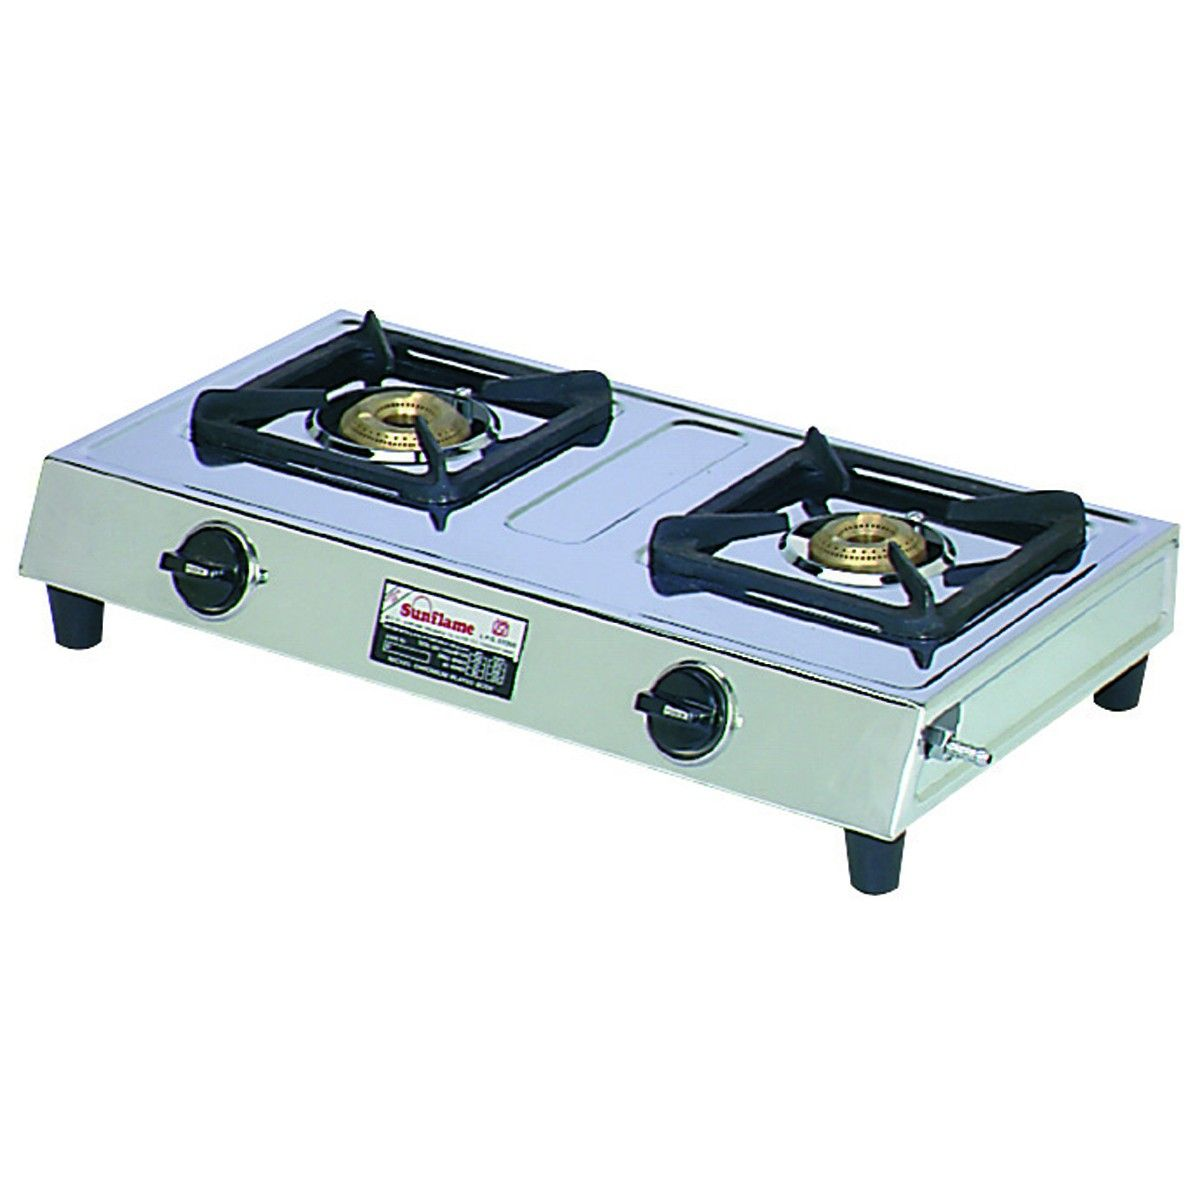 Coleman Propane Grill Stove | Camp and Expedition Gear | Pinterest ...